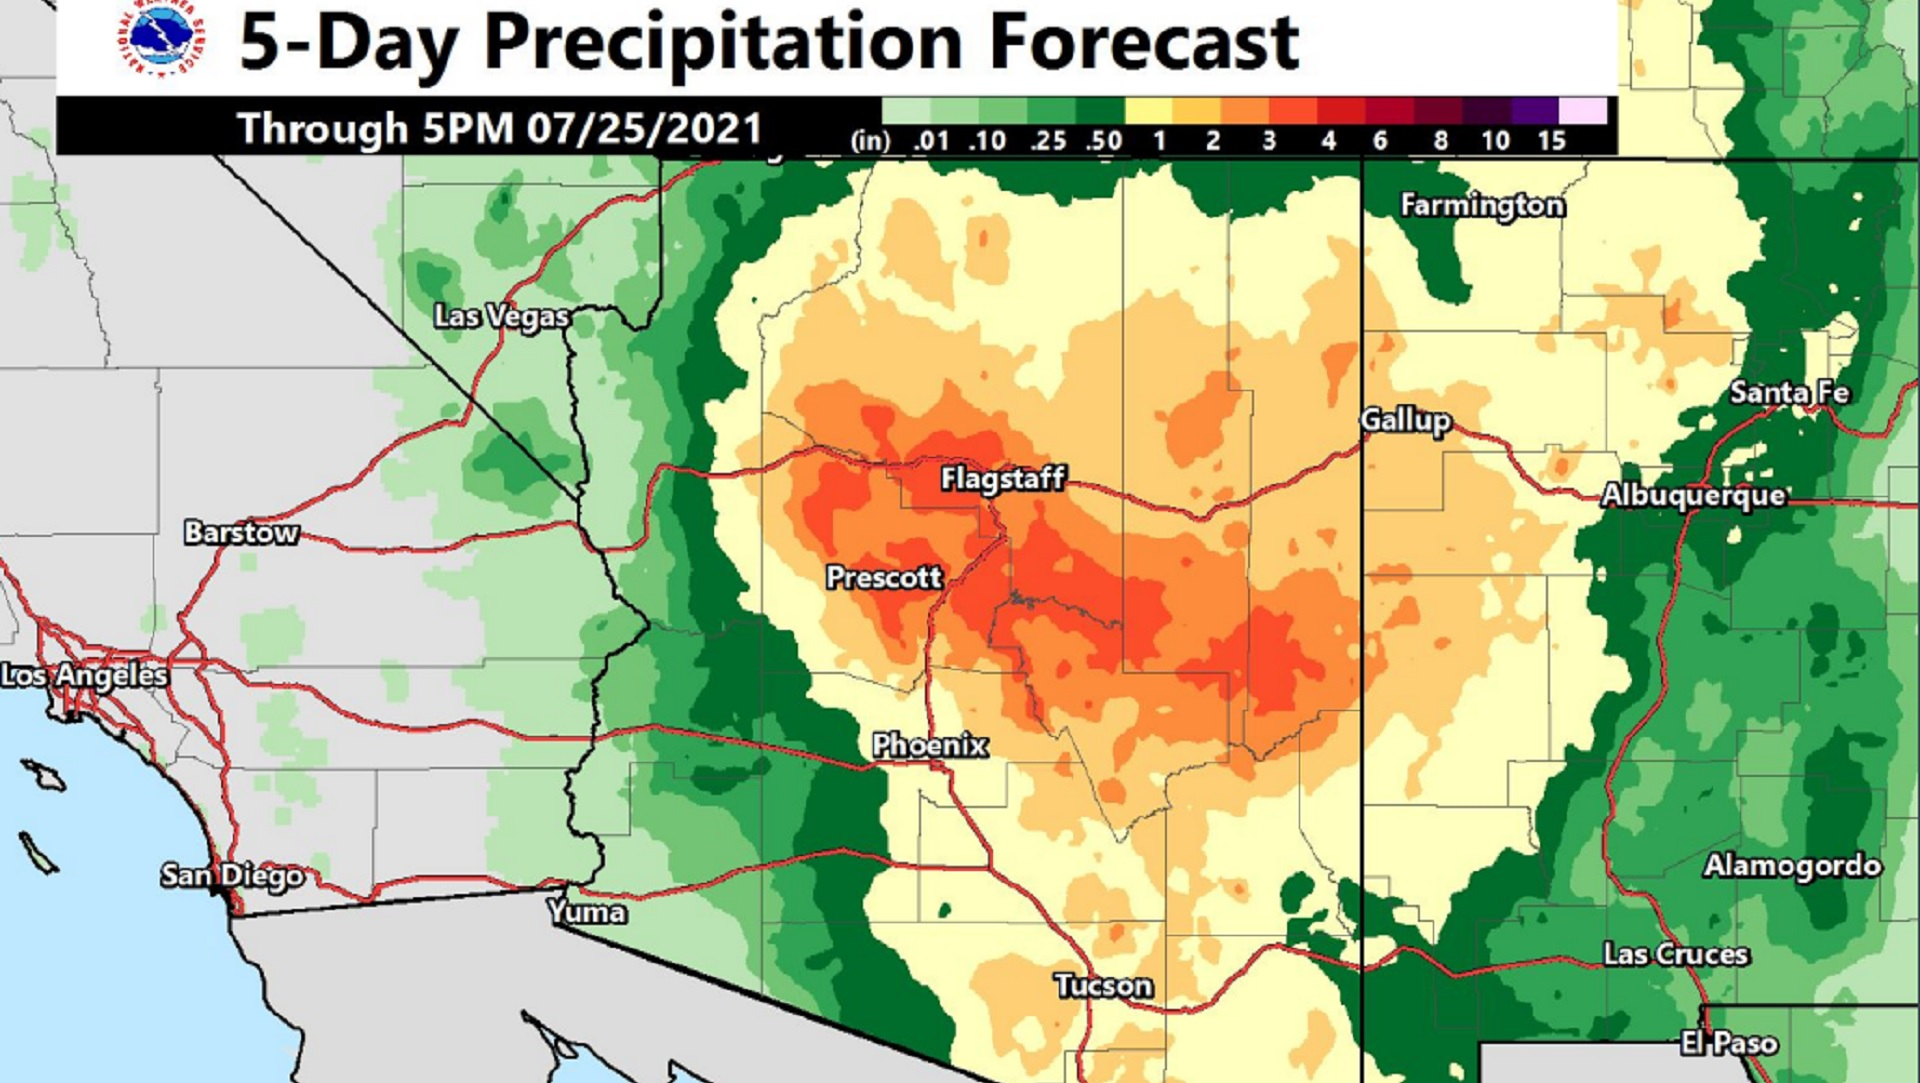 This five day precipitation forecast map released by the National Weather Service on July 21, 2021 shows that much of the state's midsection is expected to get at least one inch of rainfall, with some areas receiving up to three inches, by Saturday night.   Nearly all of the state is under a flash flood watch through 11:00 p.m. Saturday.